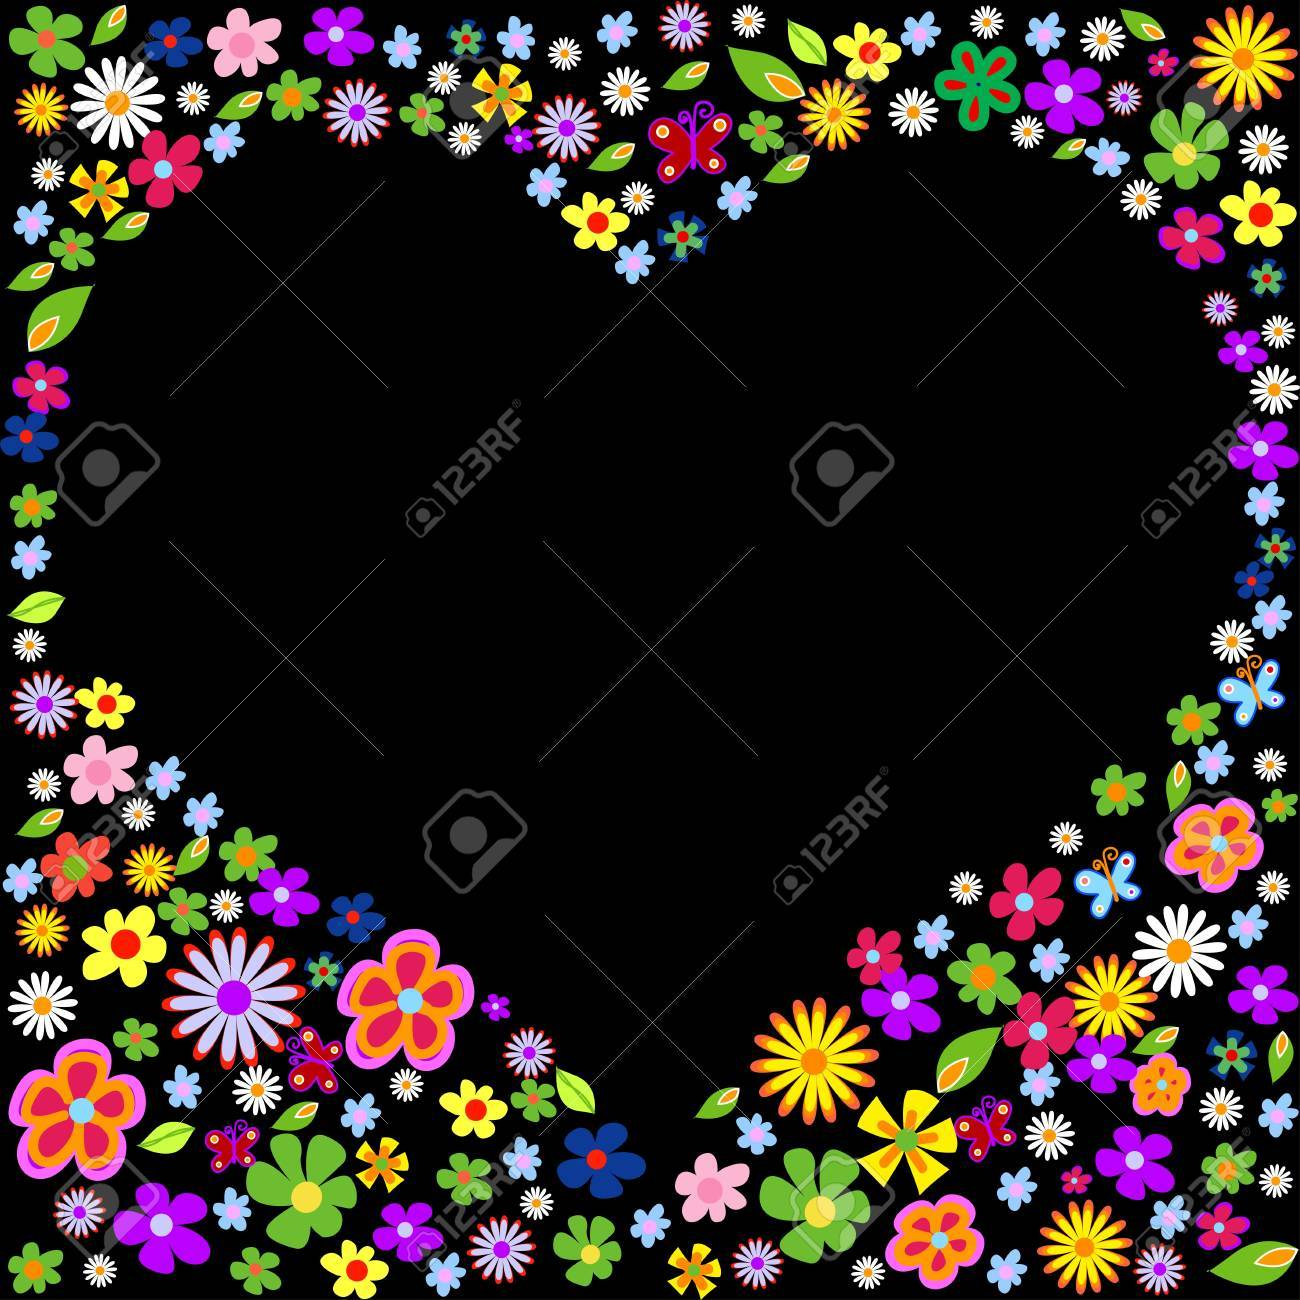 spring flower valentine illustration Stock Vector - 7884215